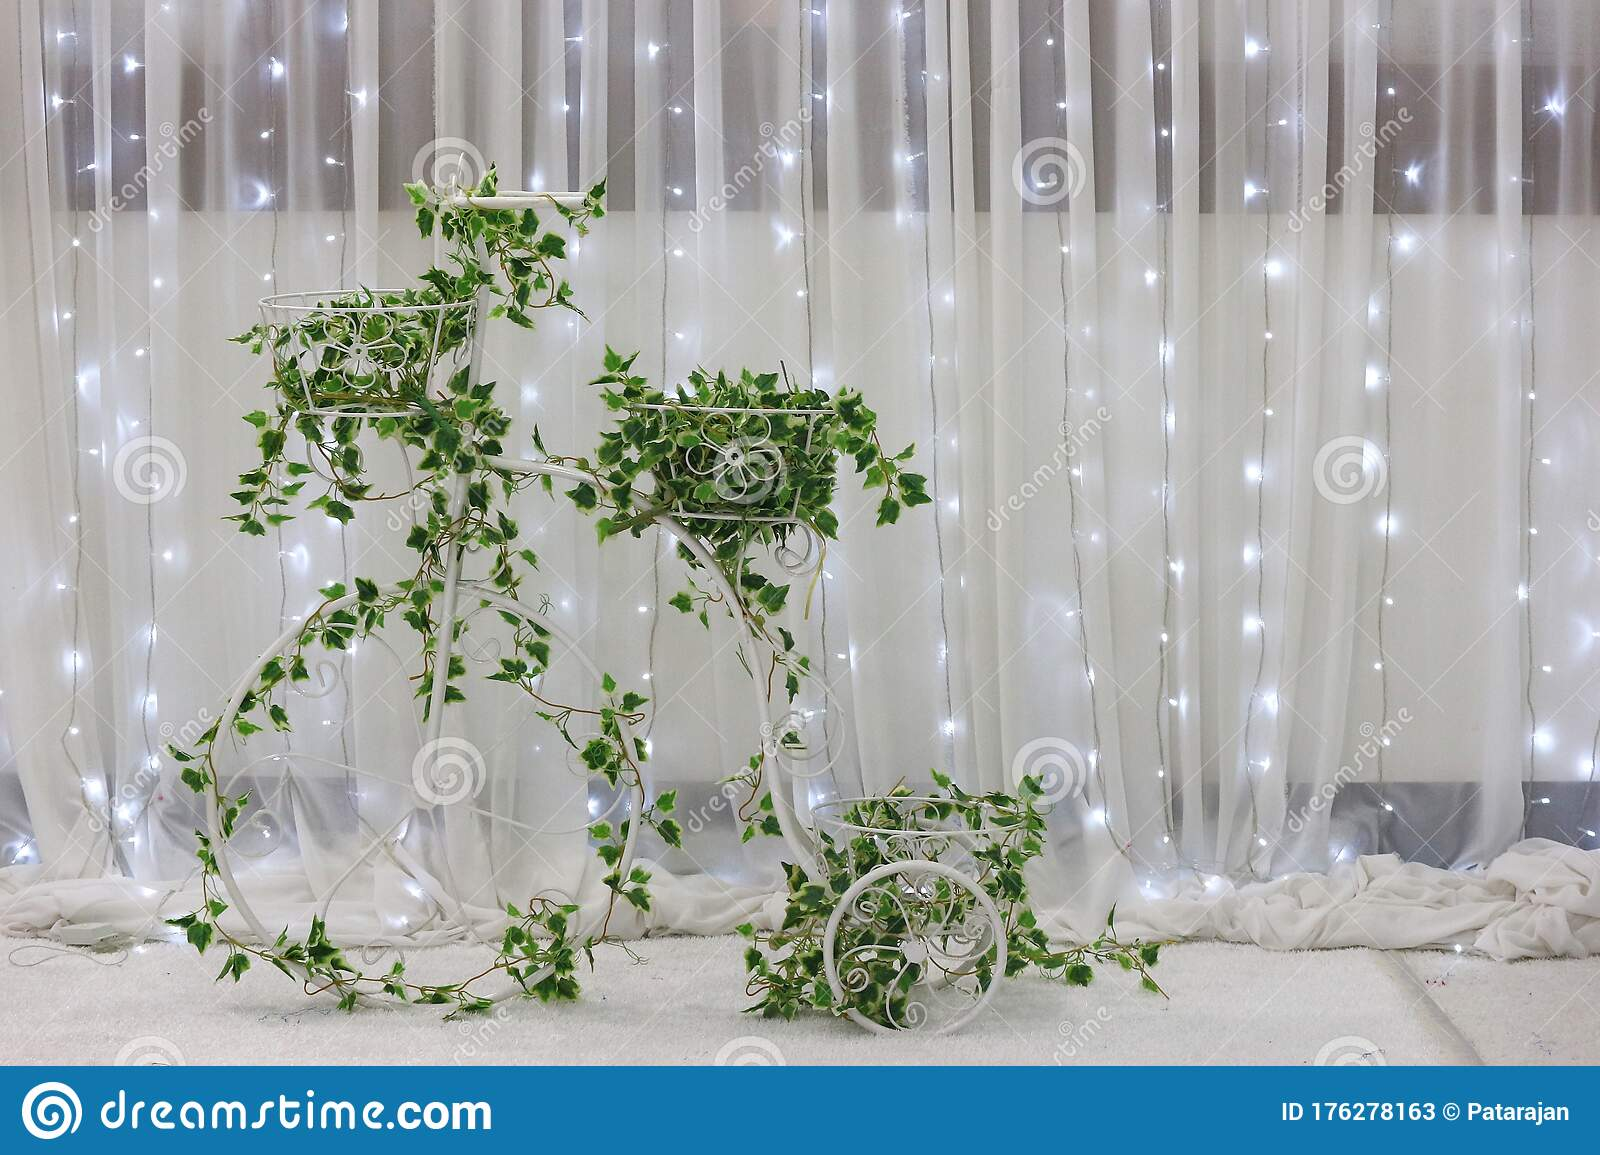 a green plant bicycle decorating on wedding party with illumination light curtain wall as background stock image image of beauty curtain 176278163